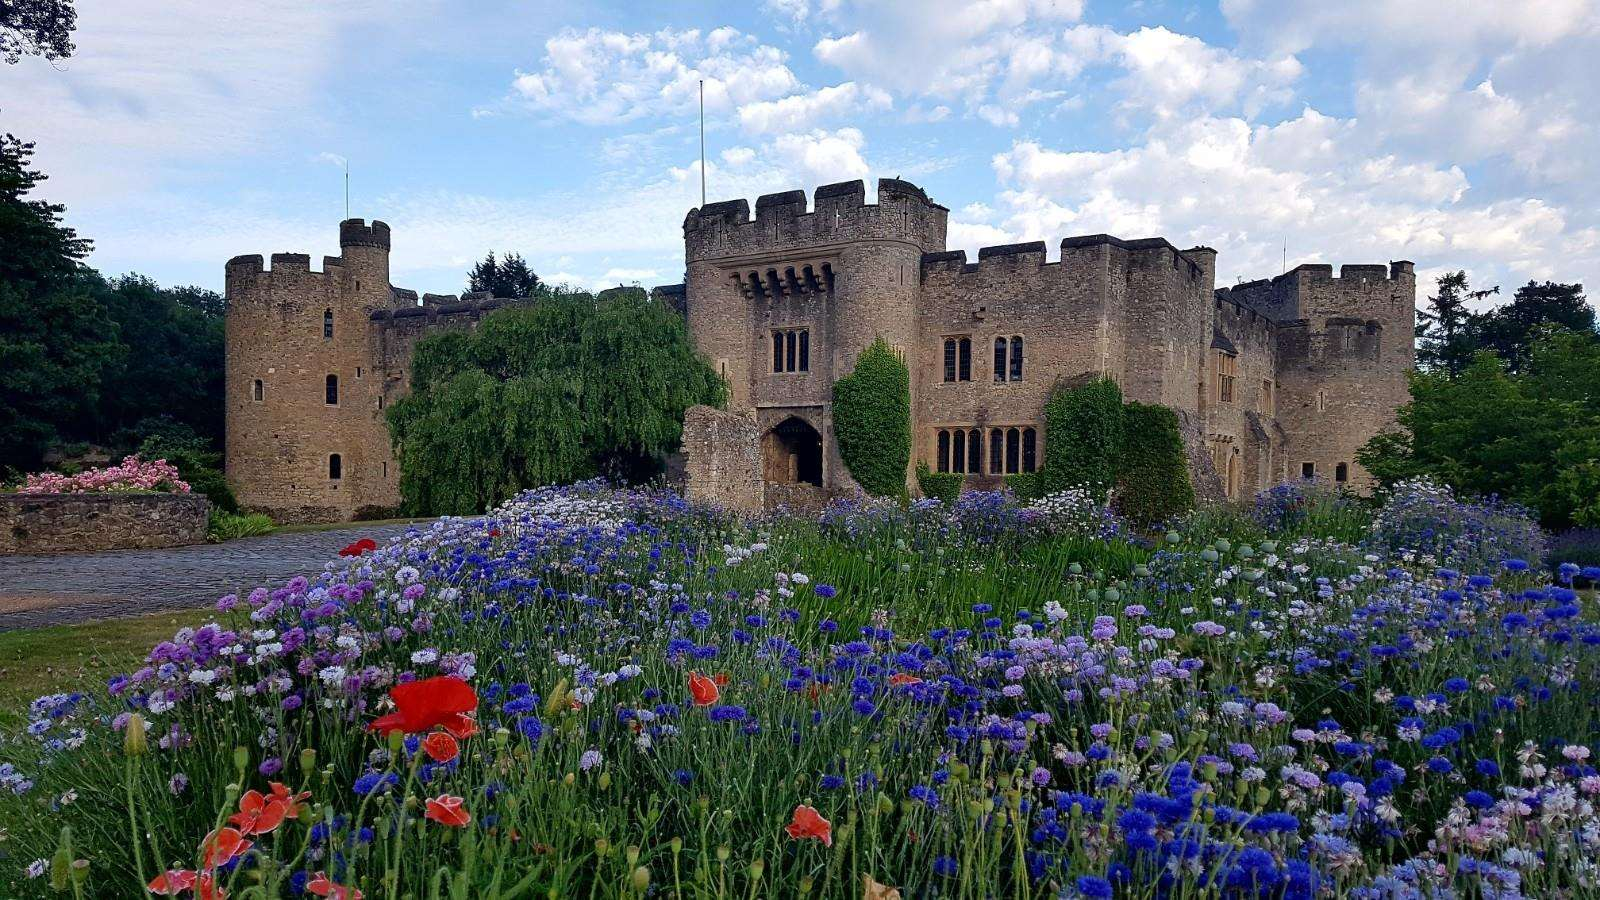 Allington Castle in Maidstone hosted the launch event